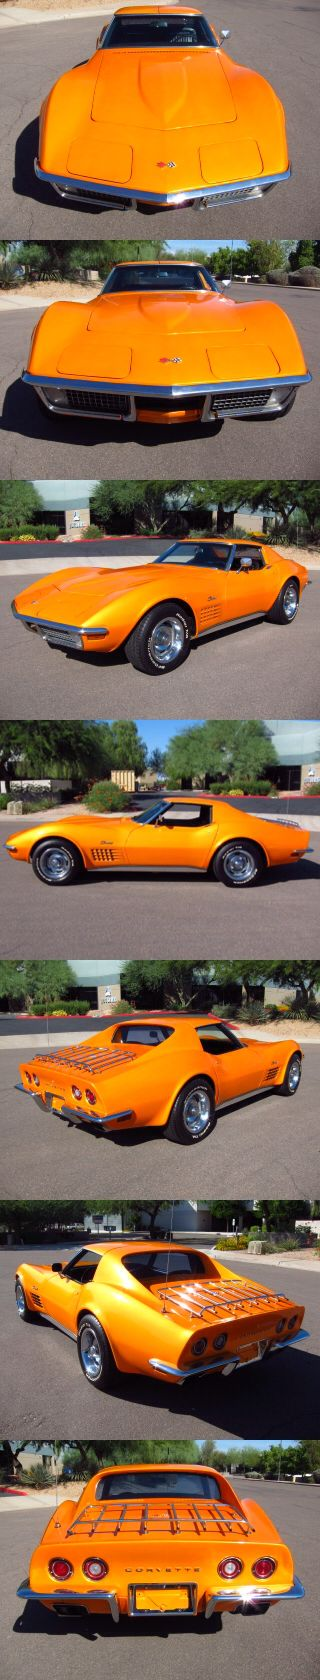 1970 Chevy Corvette. Now that's nice....